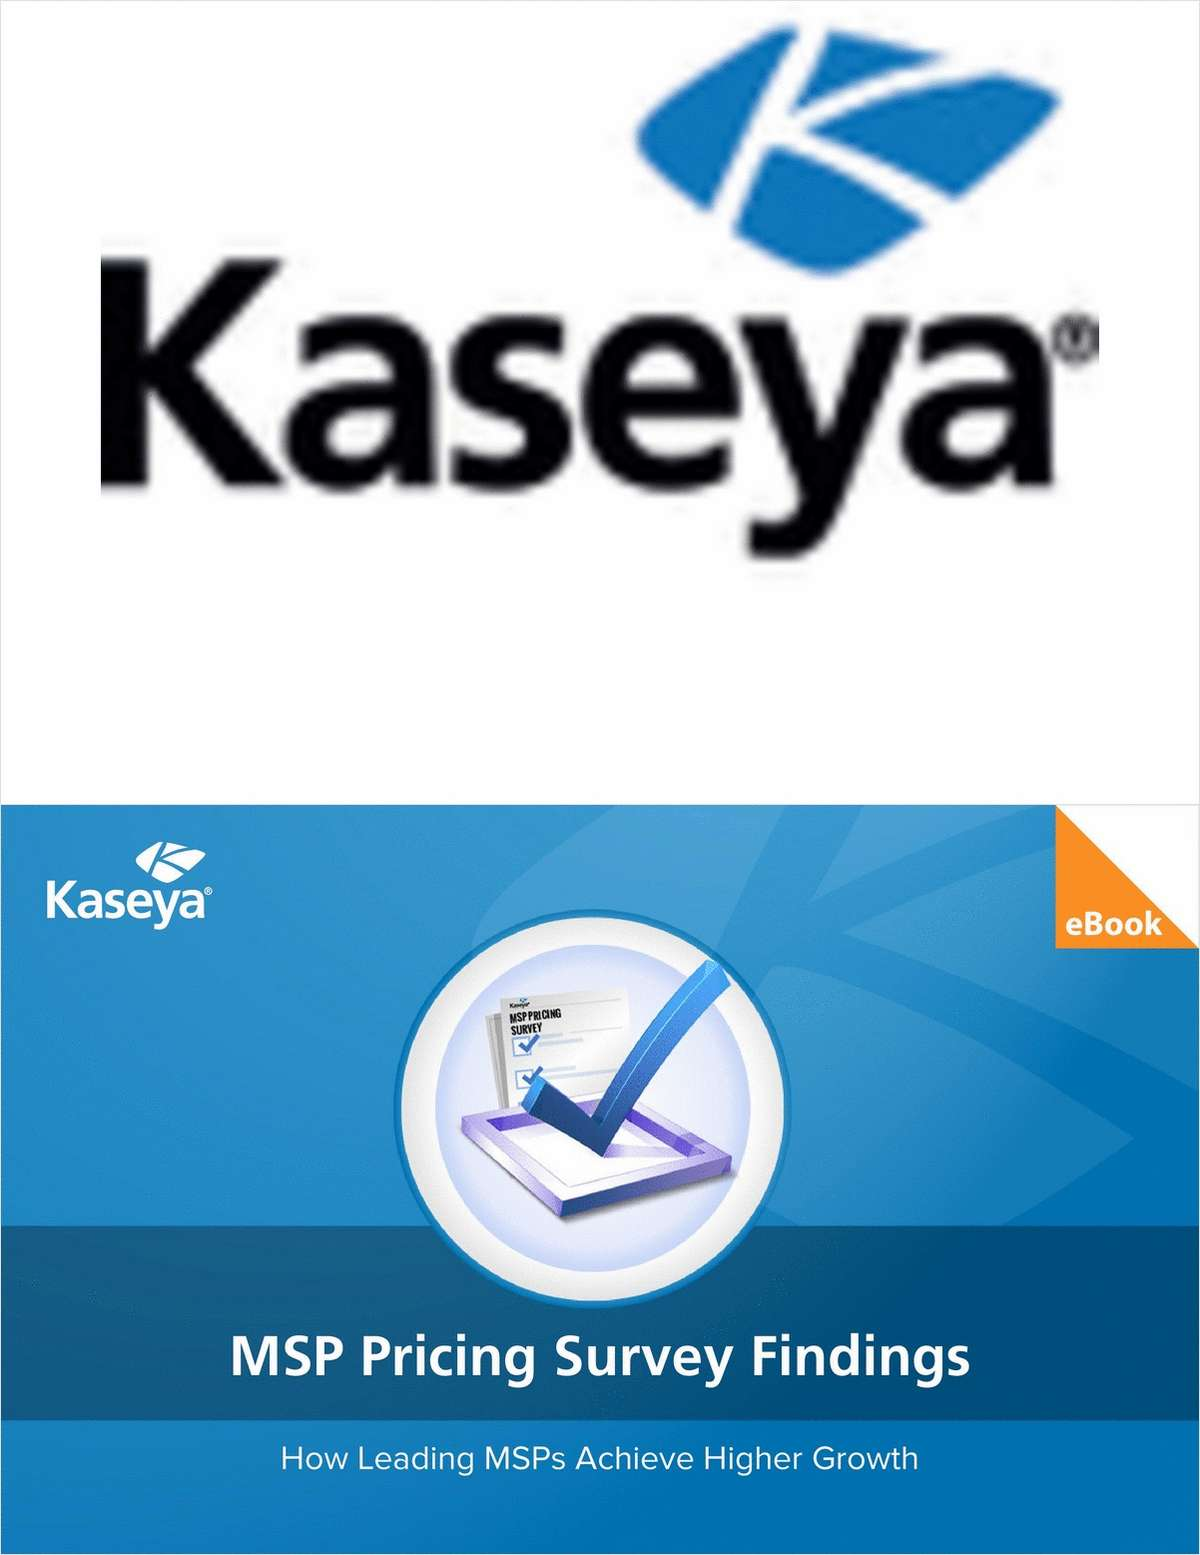 MSP Pricing Survey Findings